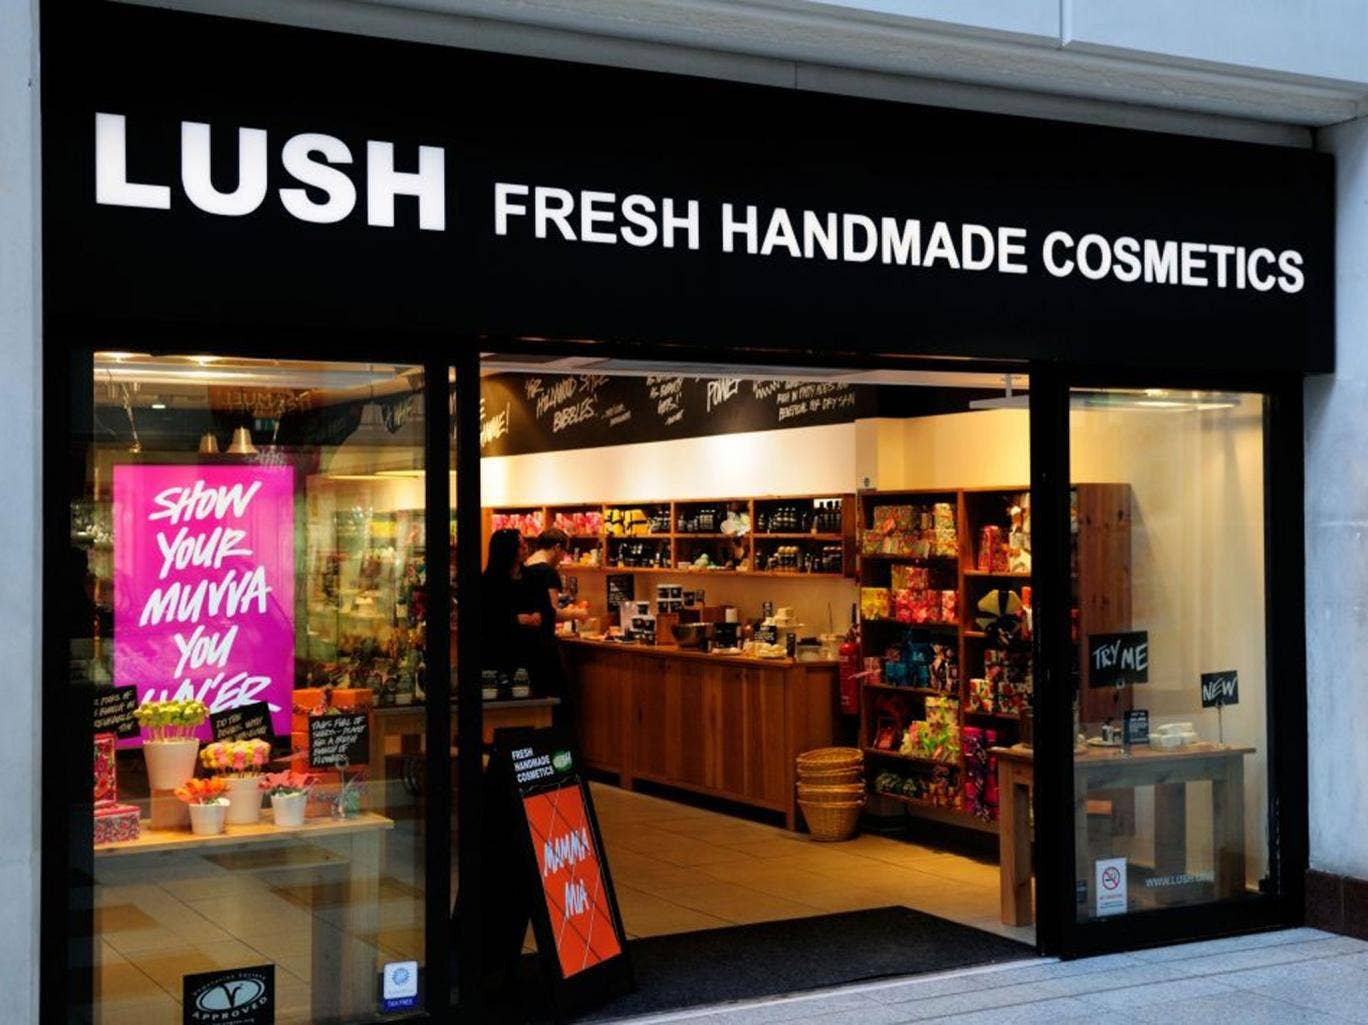 Lush often uses its front windows to campaign against social injustice